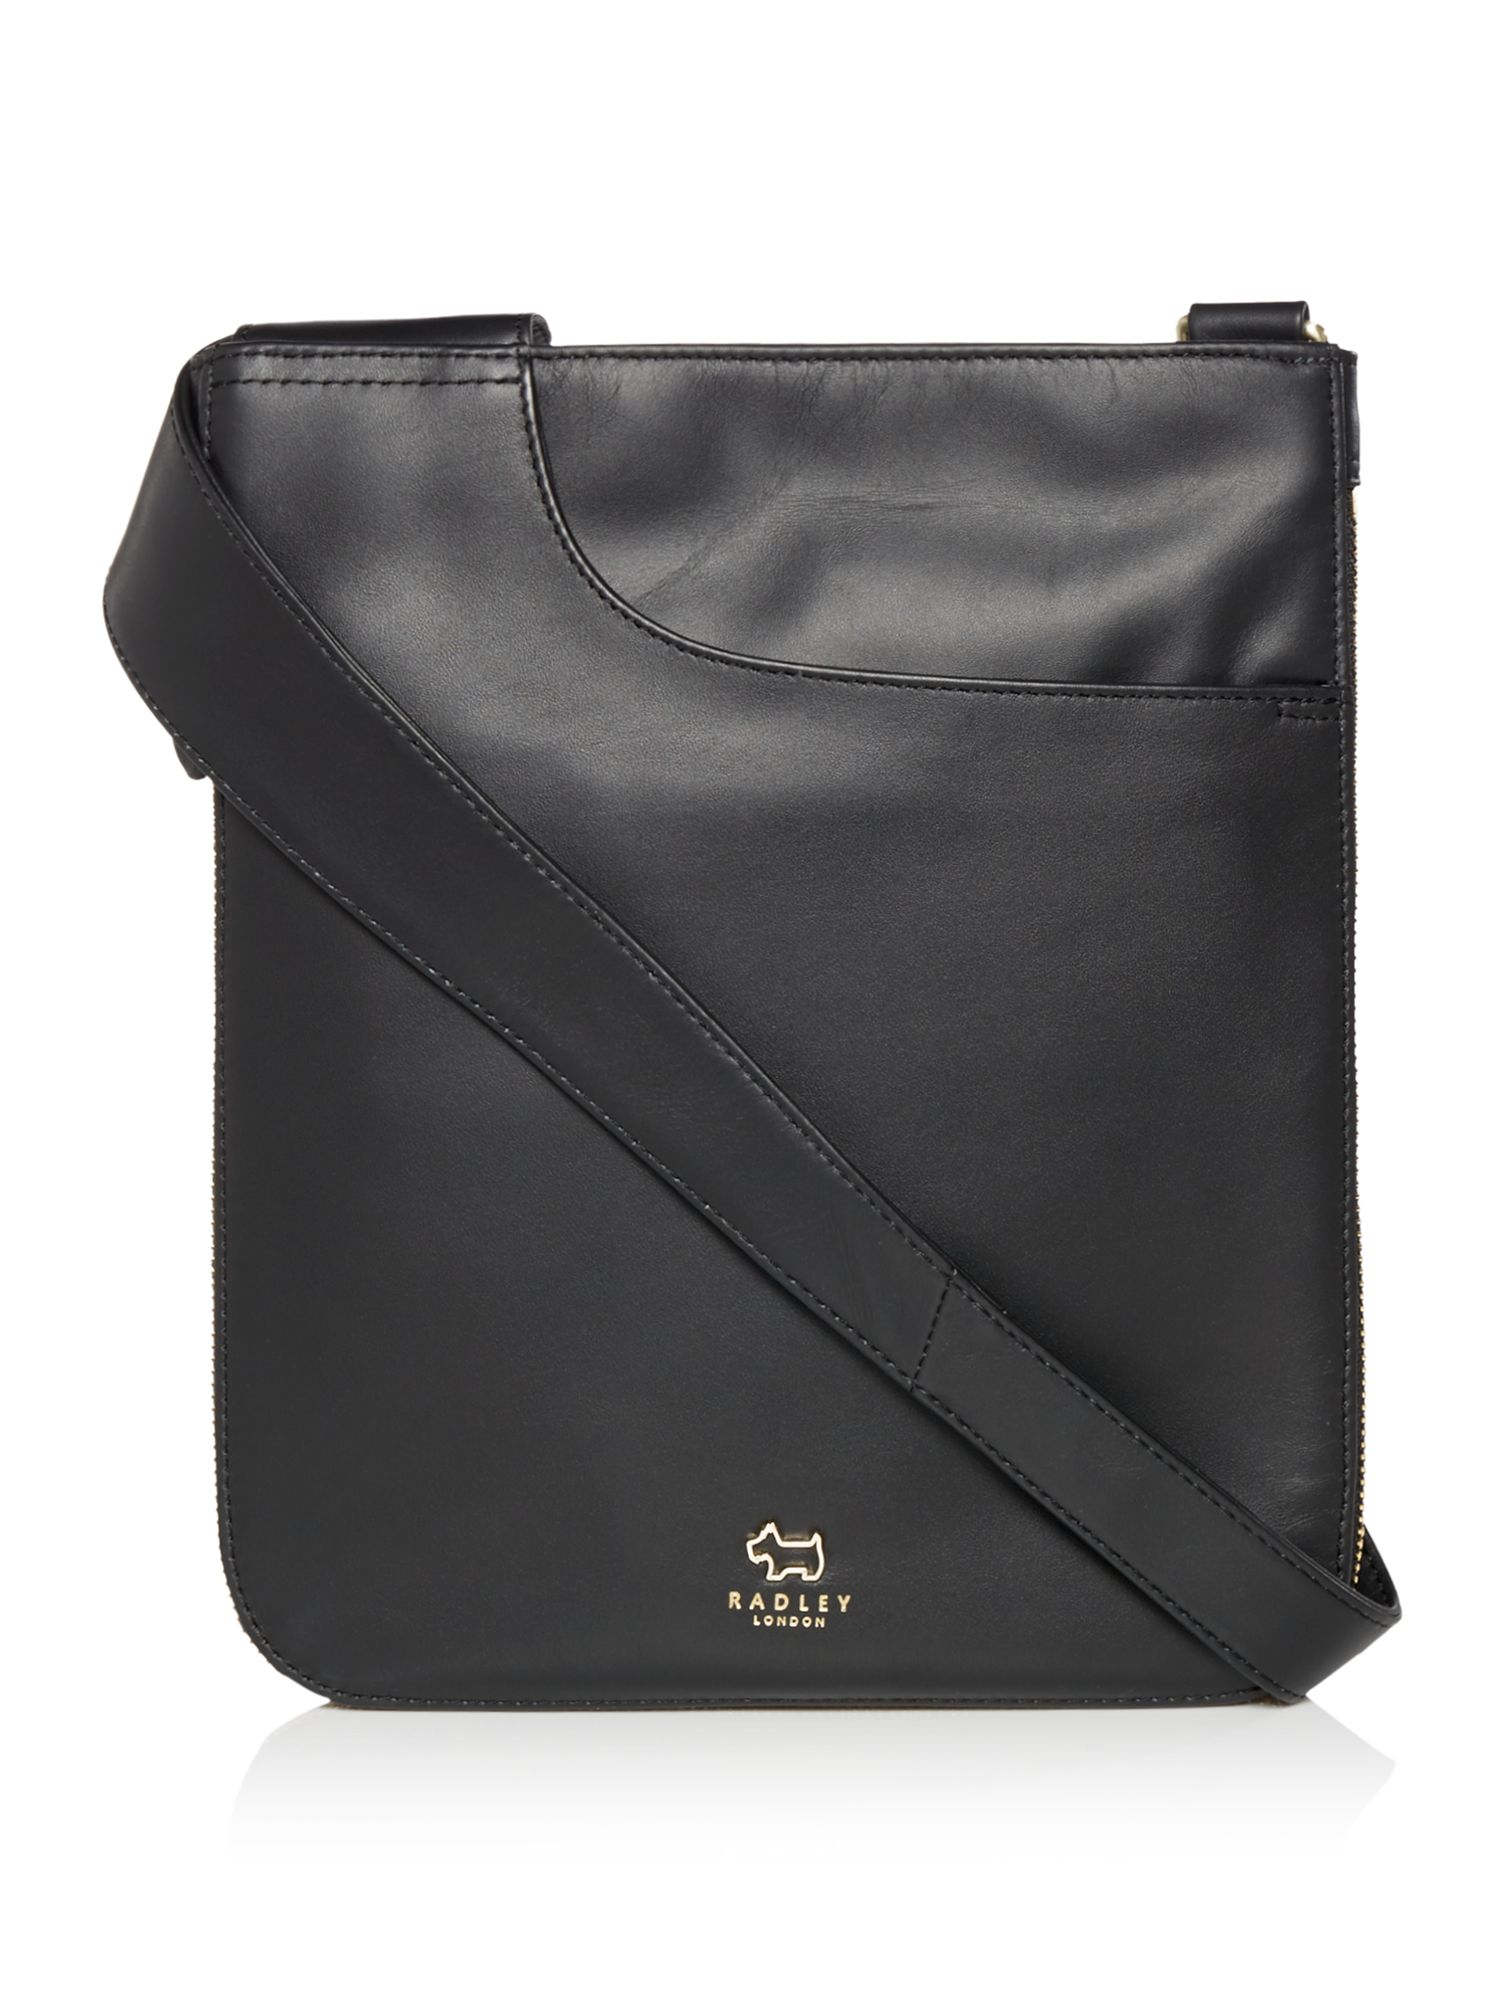 Radley Pocket bag medium zip cross body bag Black